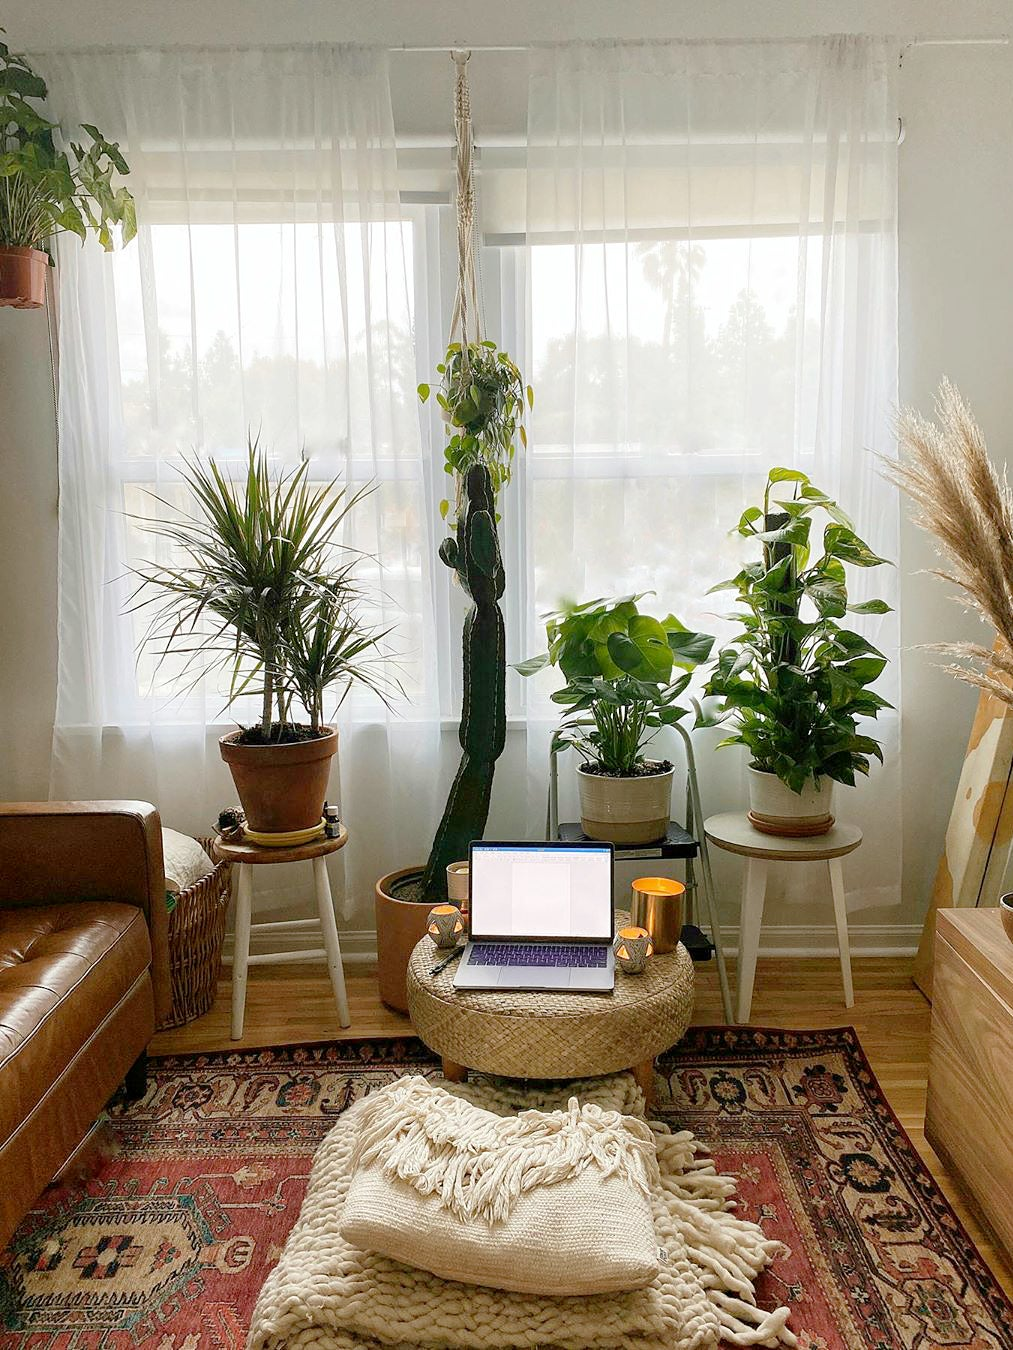 Pouf with laptop on it surrounded by plants